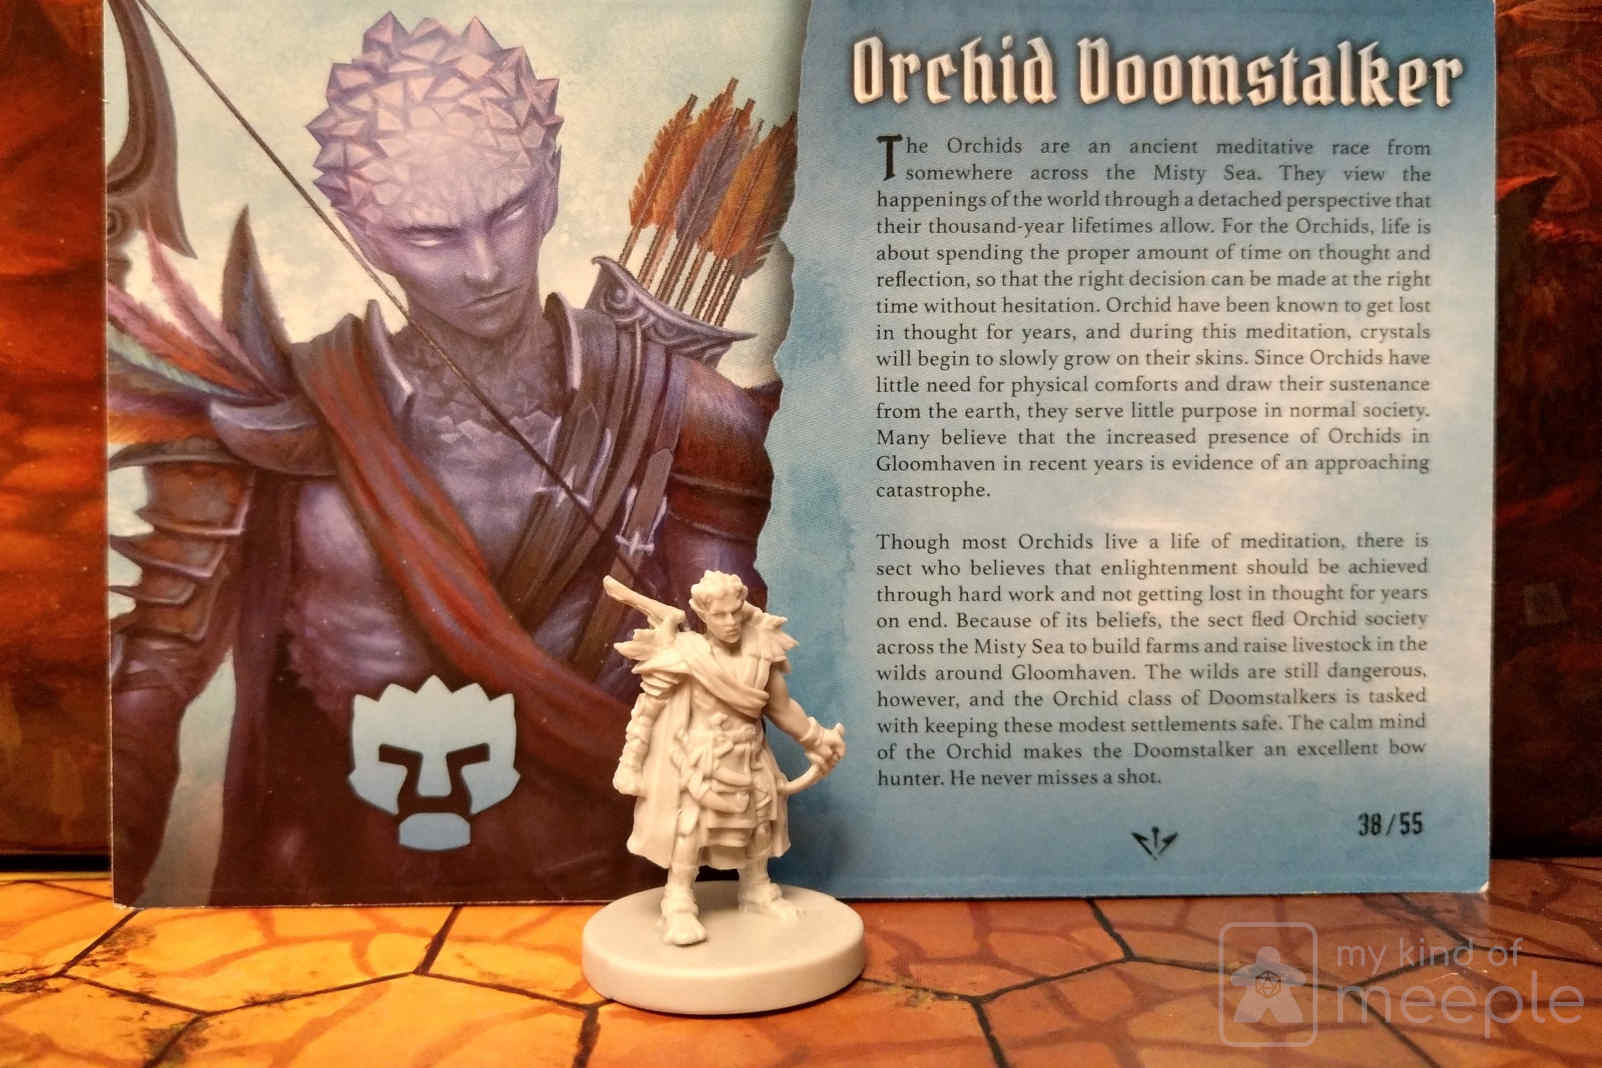 Gloomhaven Doomstalker unlockable class miniature and board